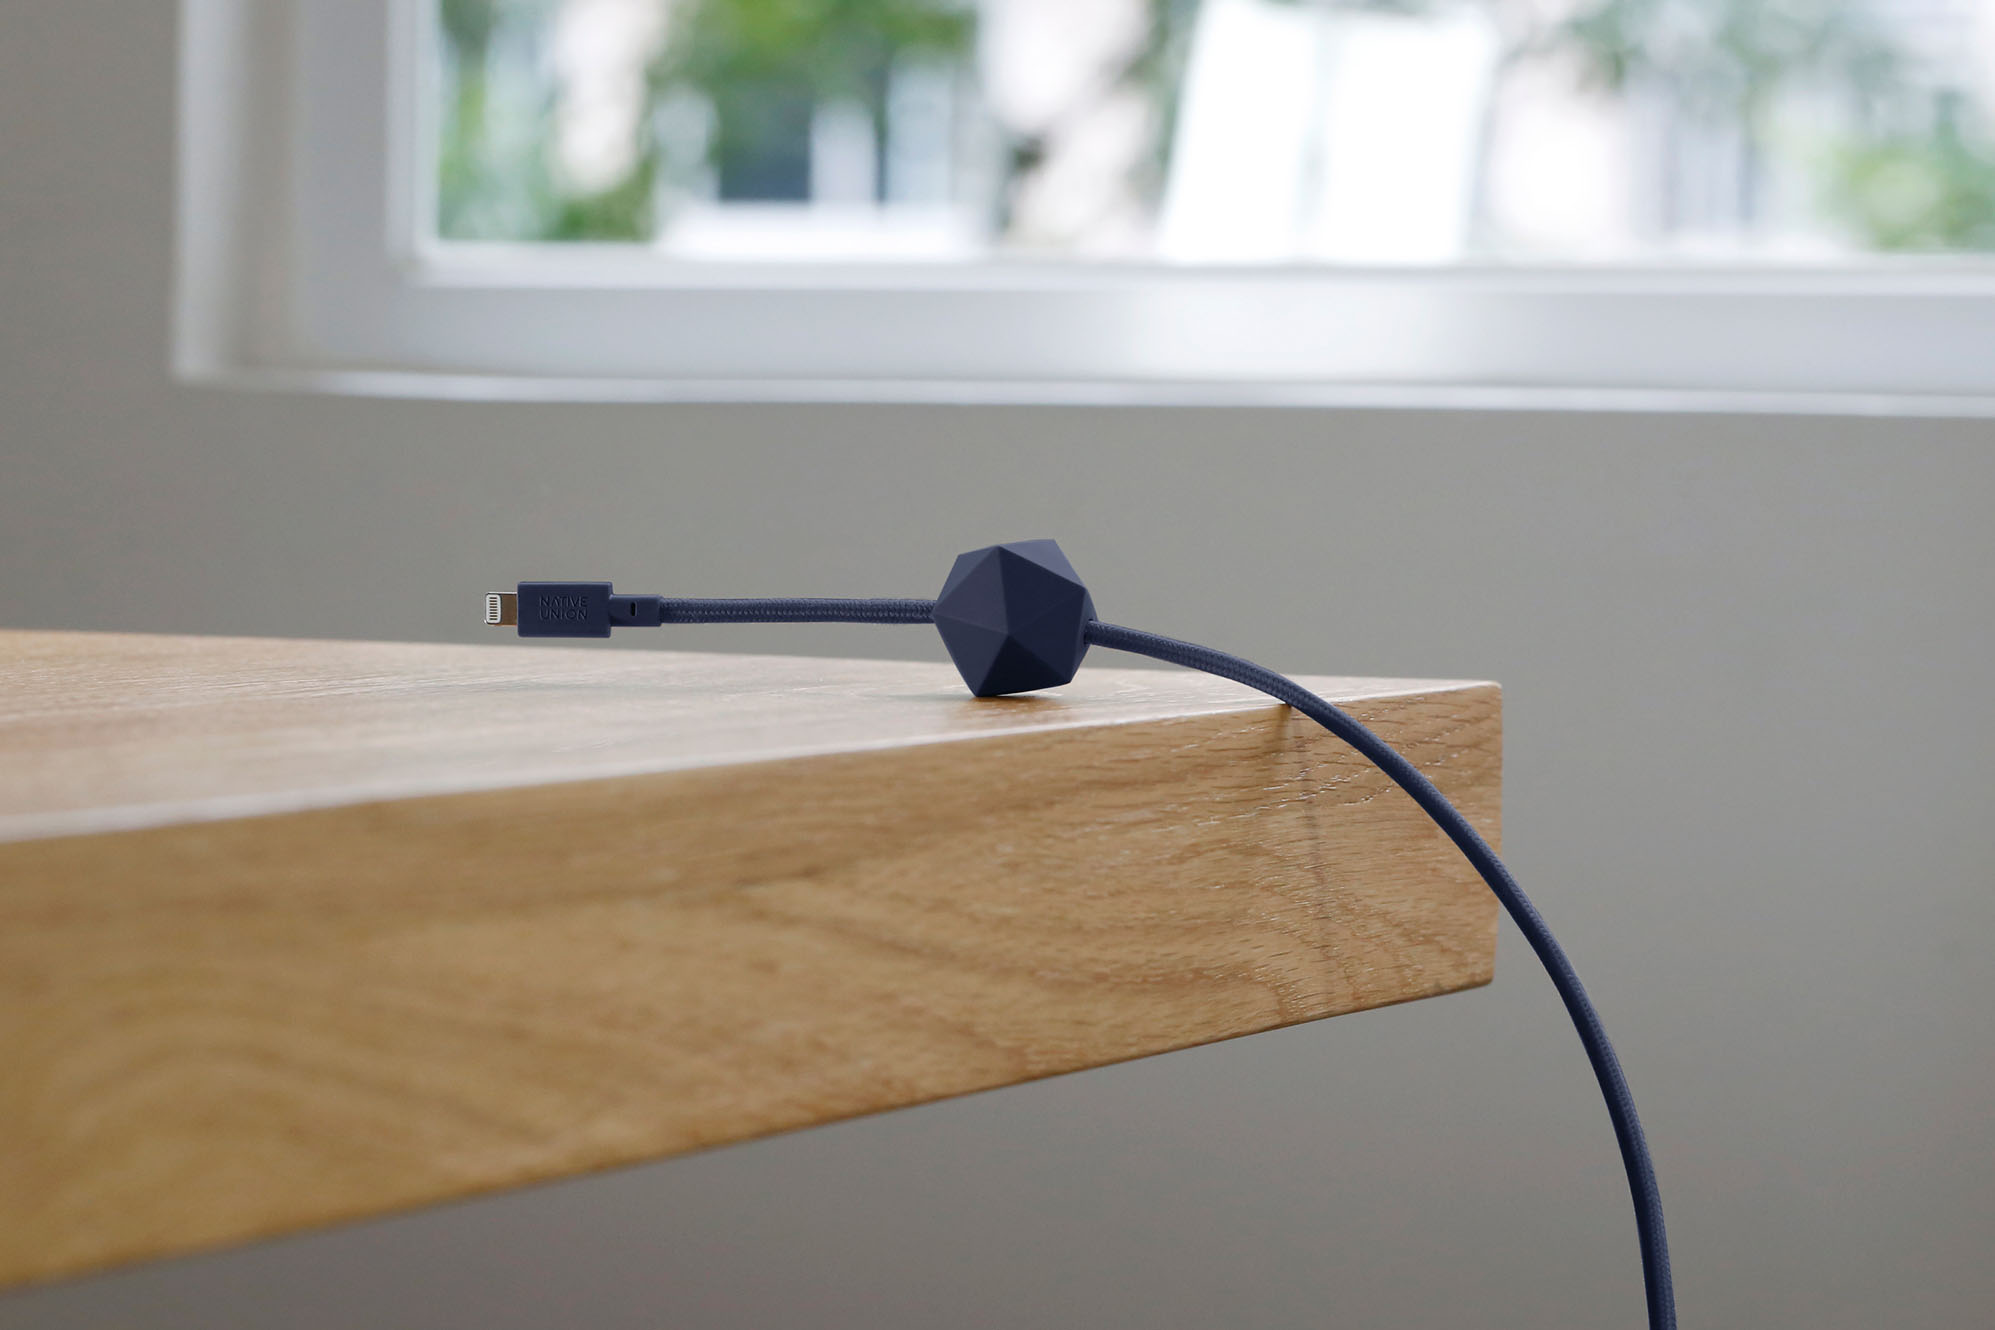 native-union-anchor-cable-product-design-technology-charger_dezeen_hero1.jpg